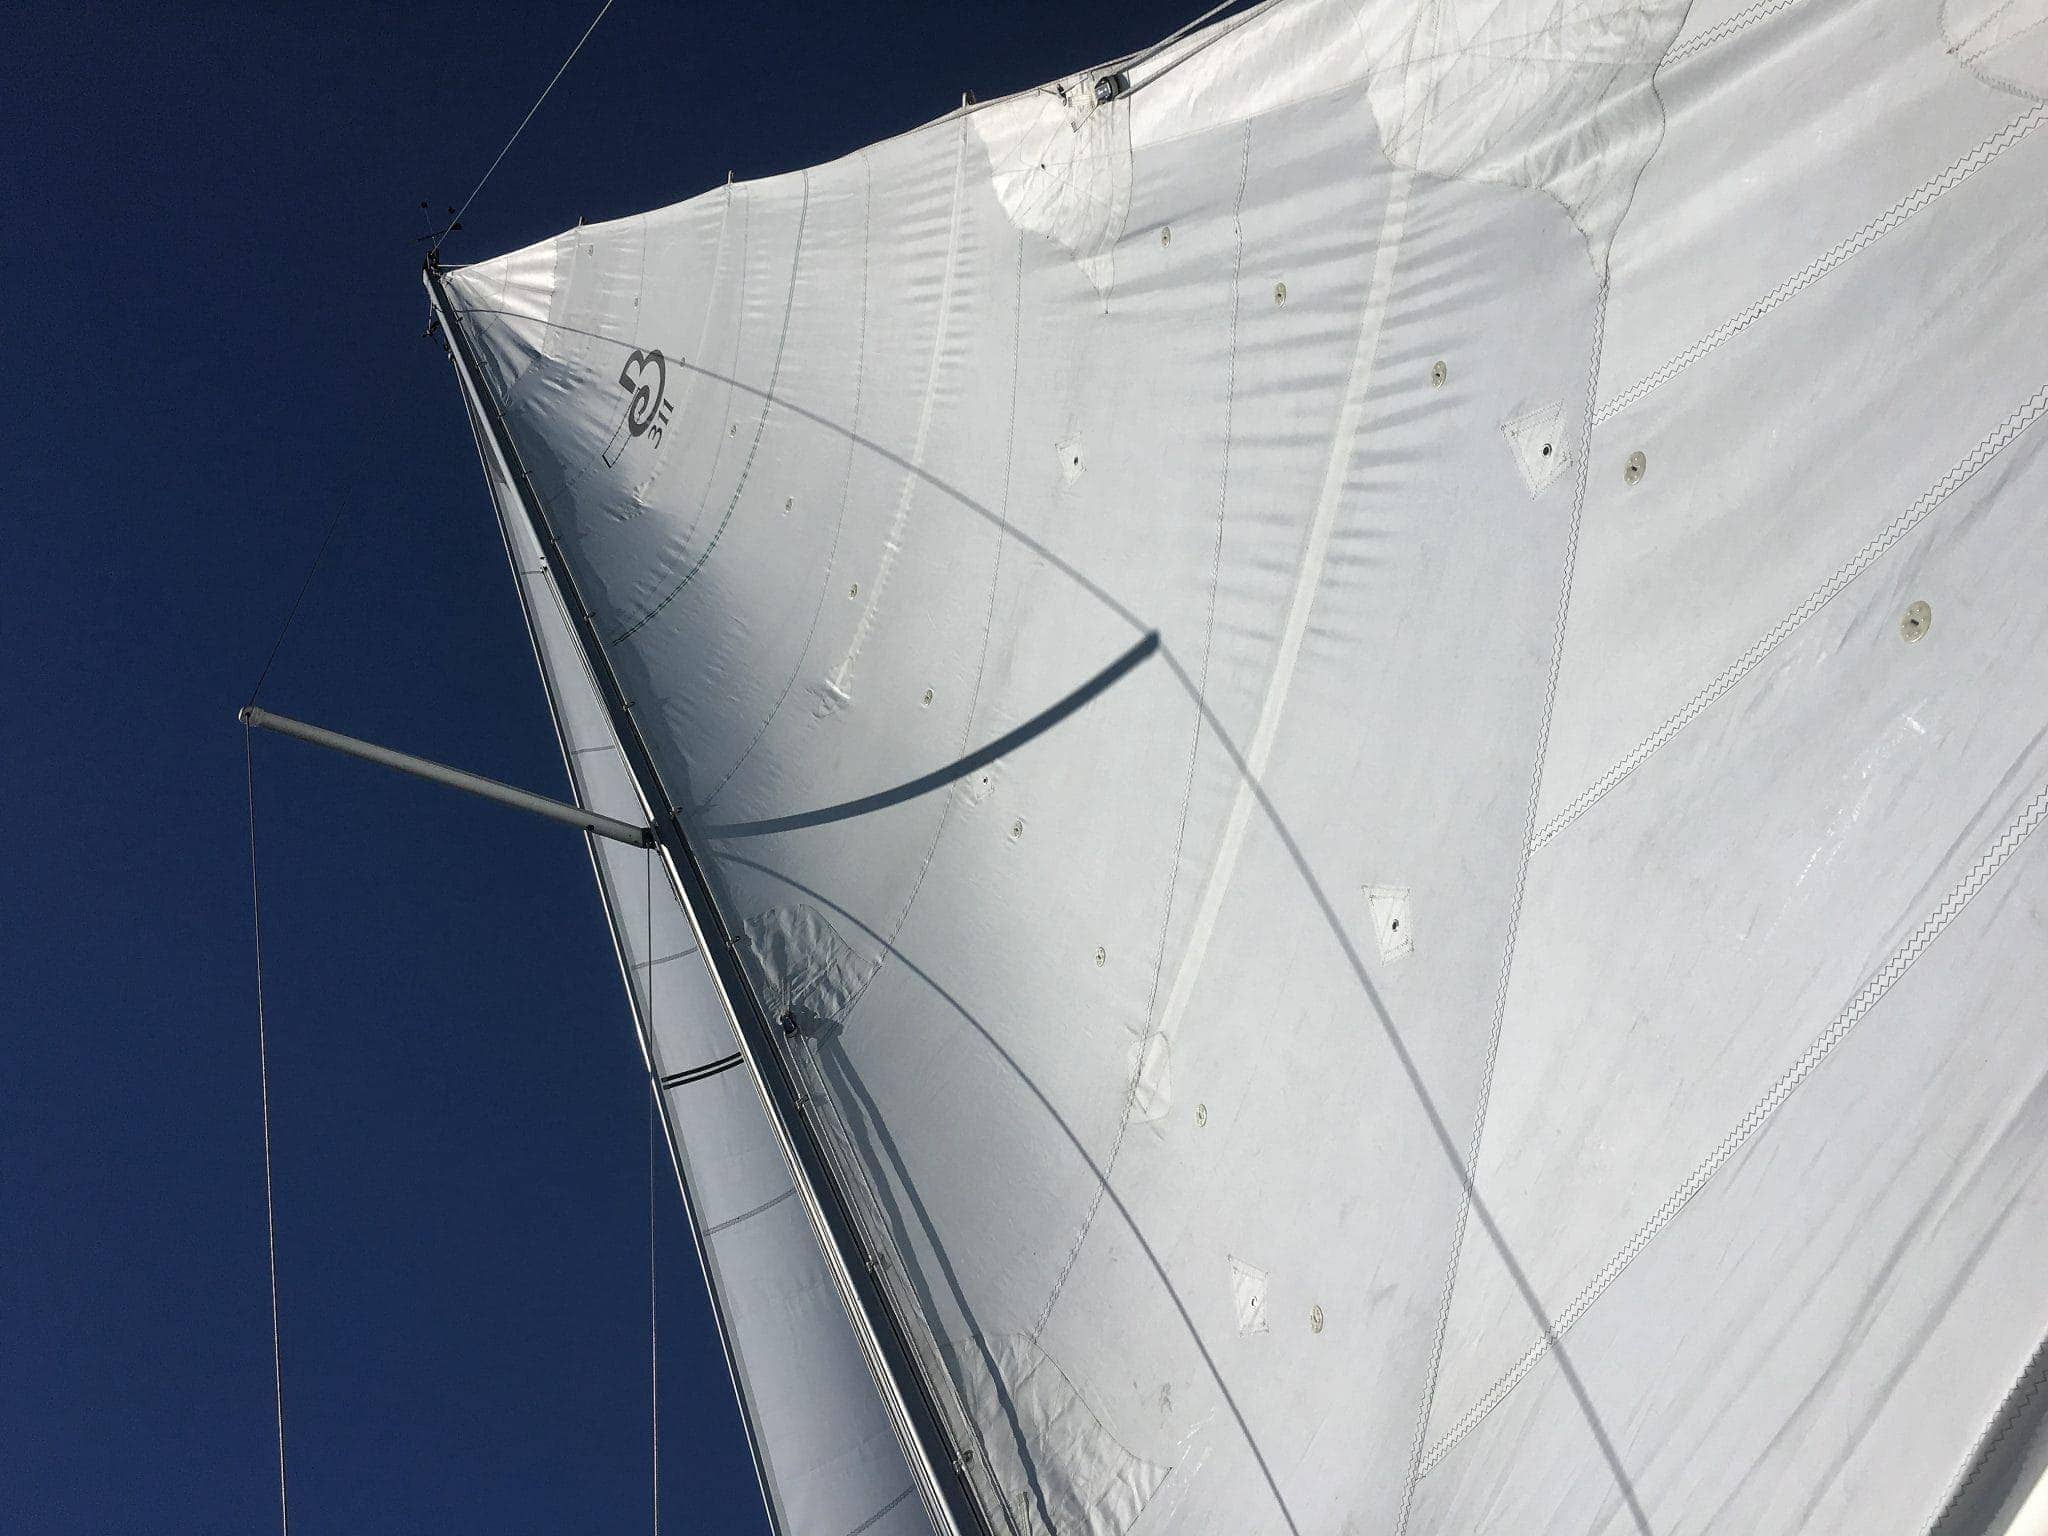 Grace's mainsail looking good